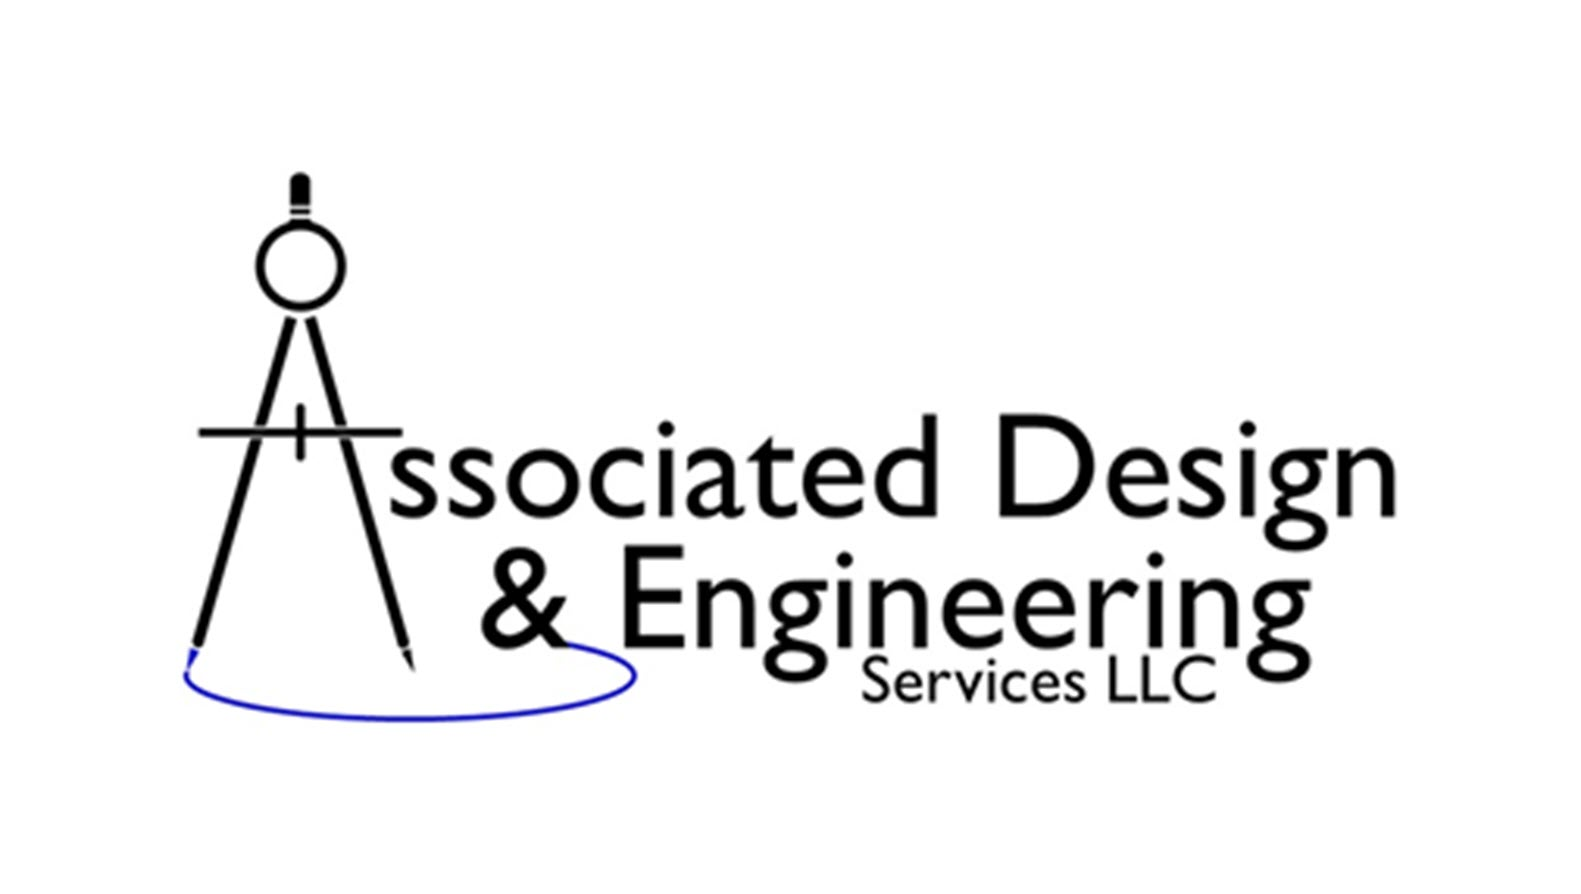 Association Design and Engineering Services